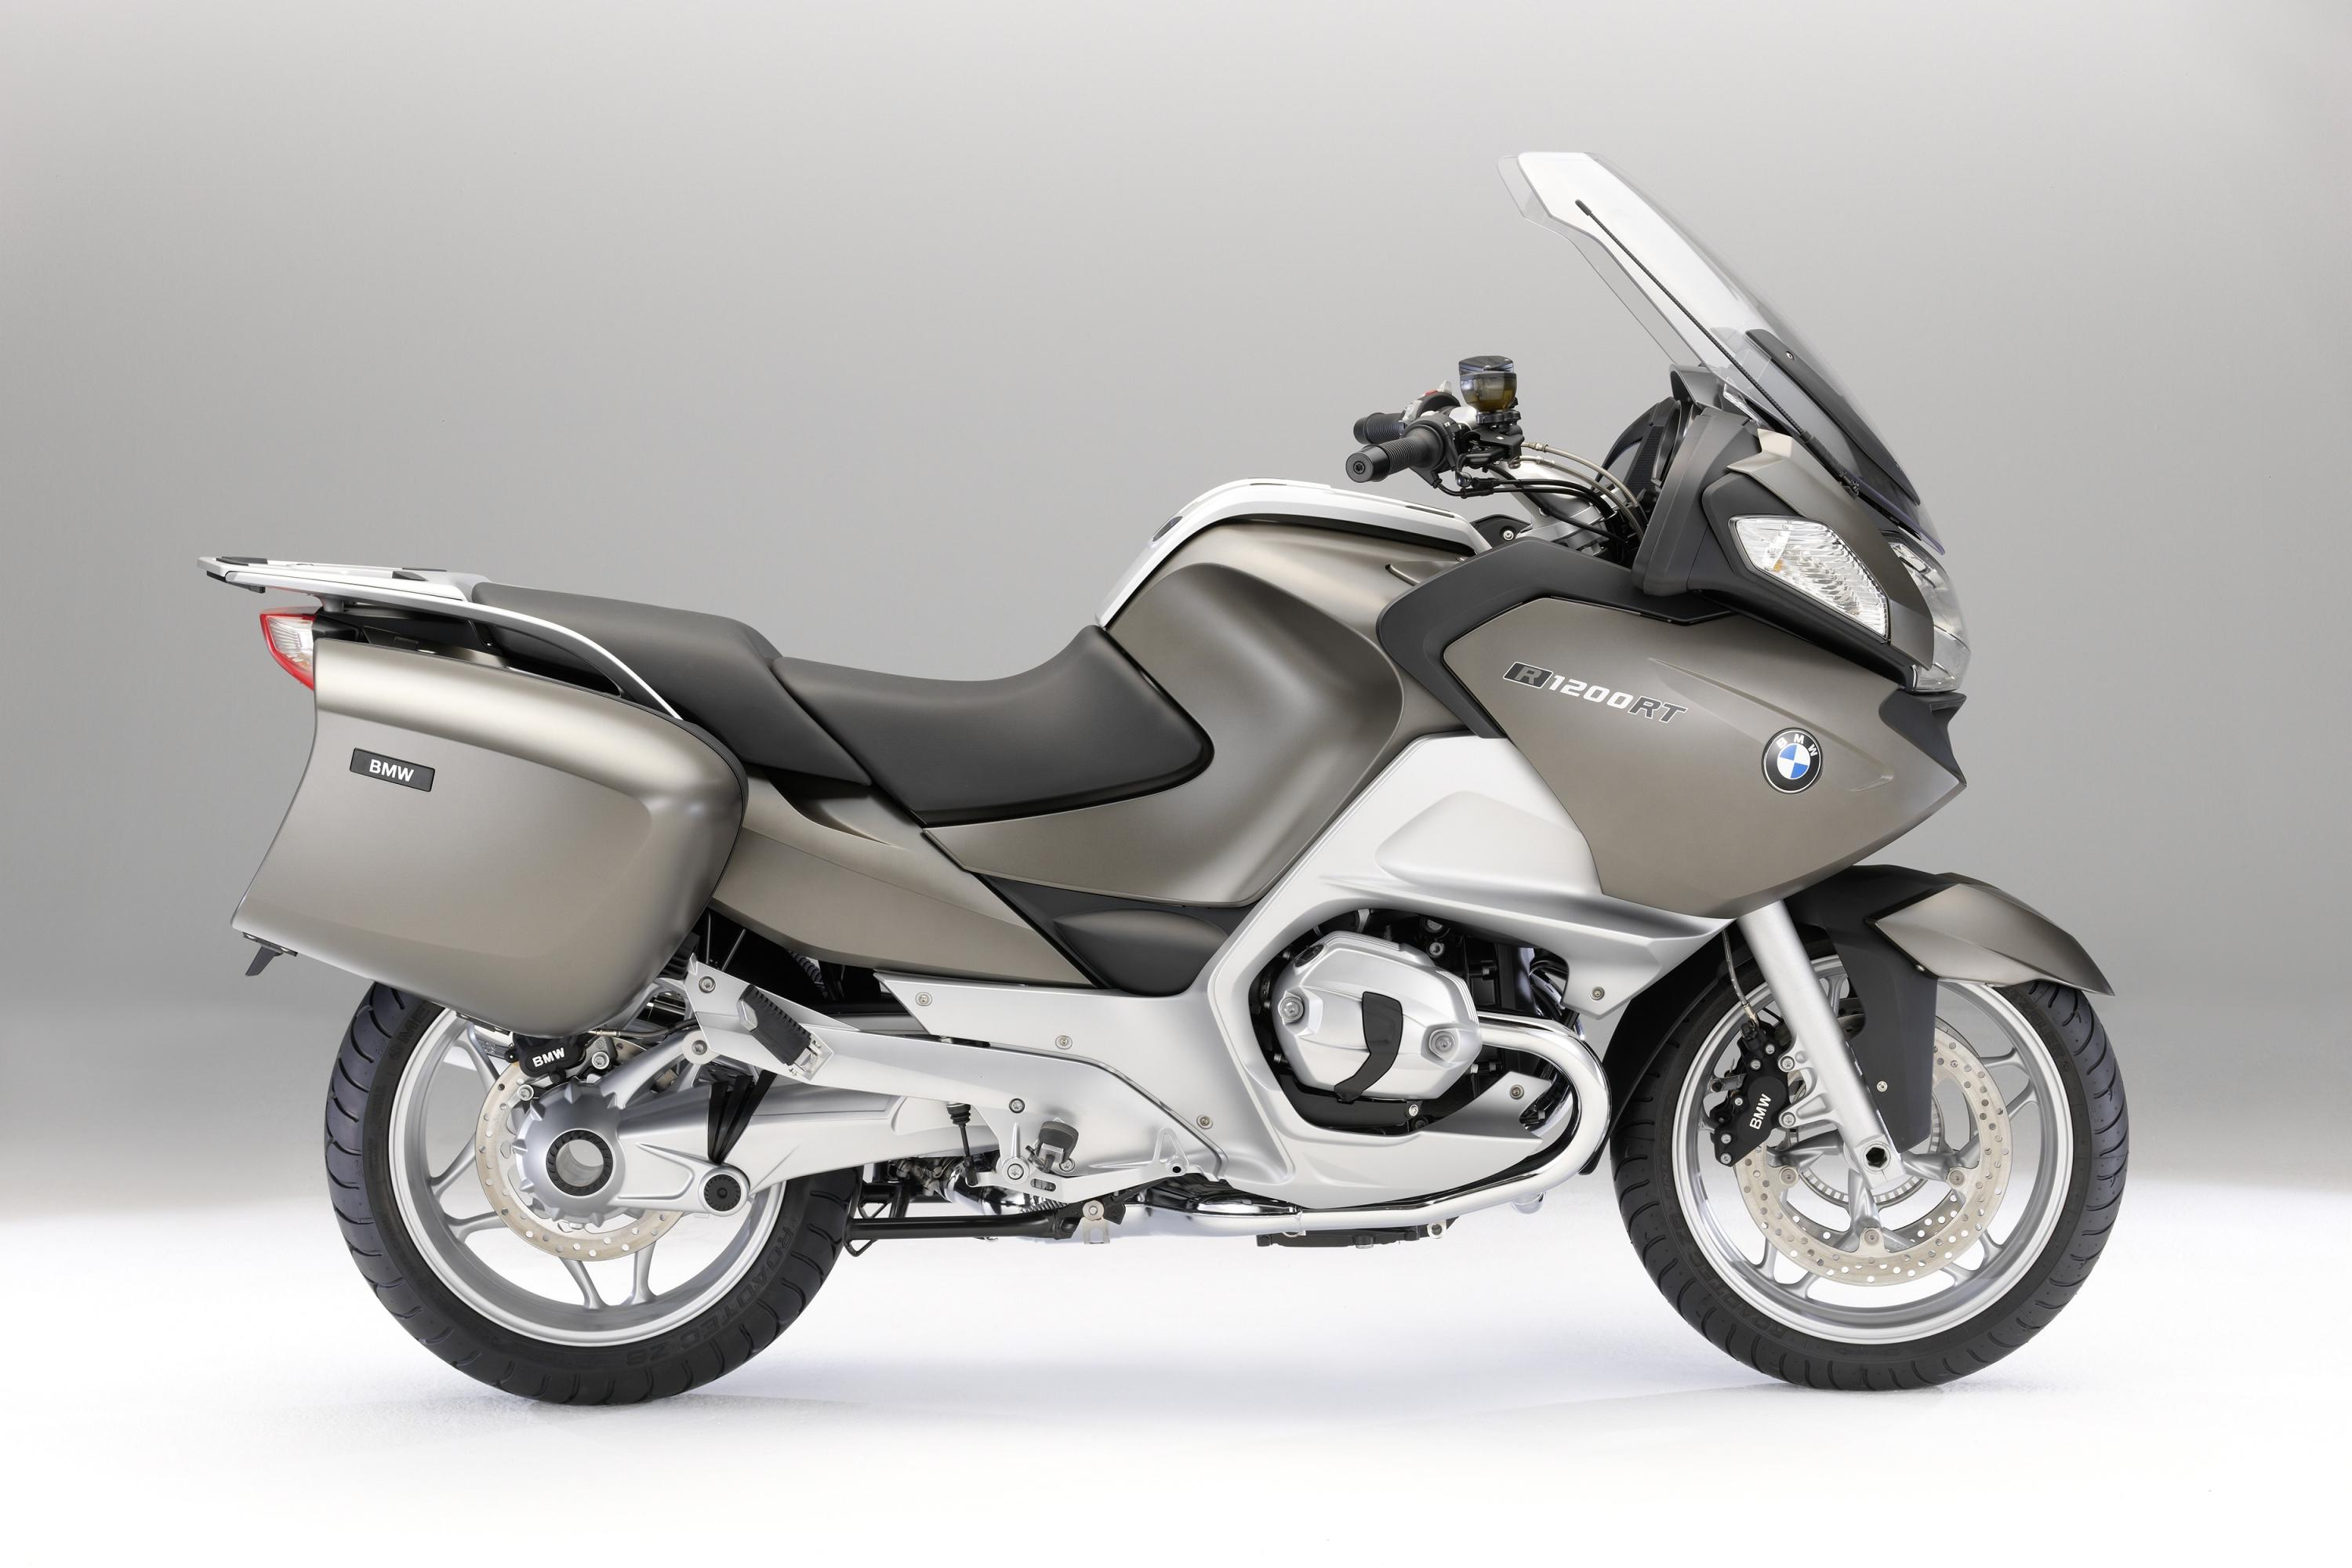 2010 Bmw R1200rt Wiring Diagram Product Diagrams S1000rr Travel Tourer U2022 Review For Sale Price Guide The Rh Thebikemarket